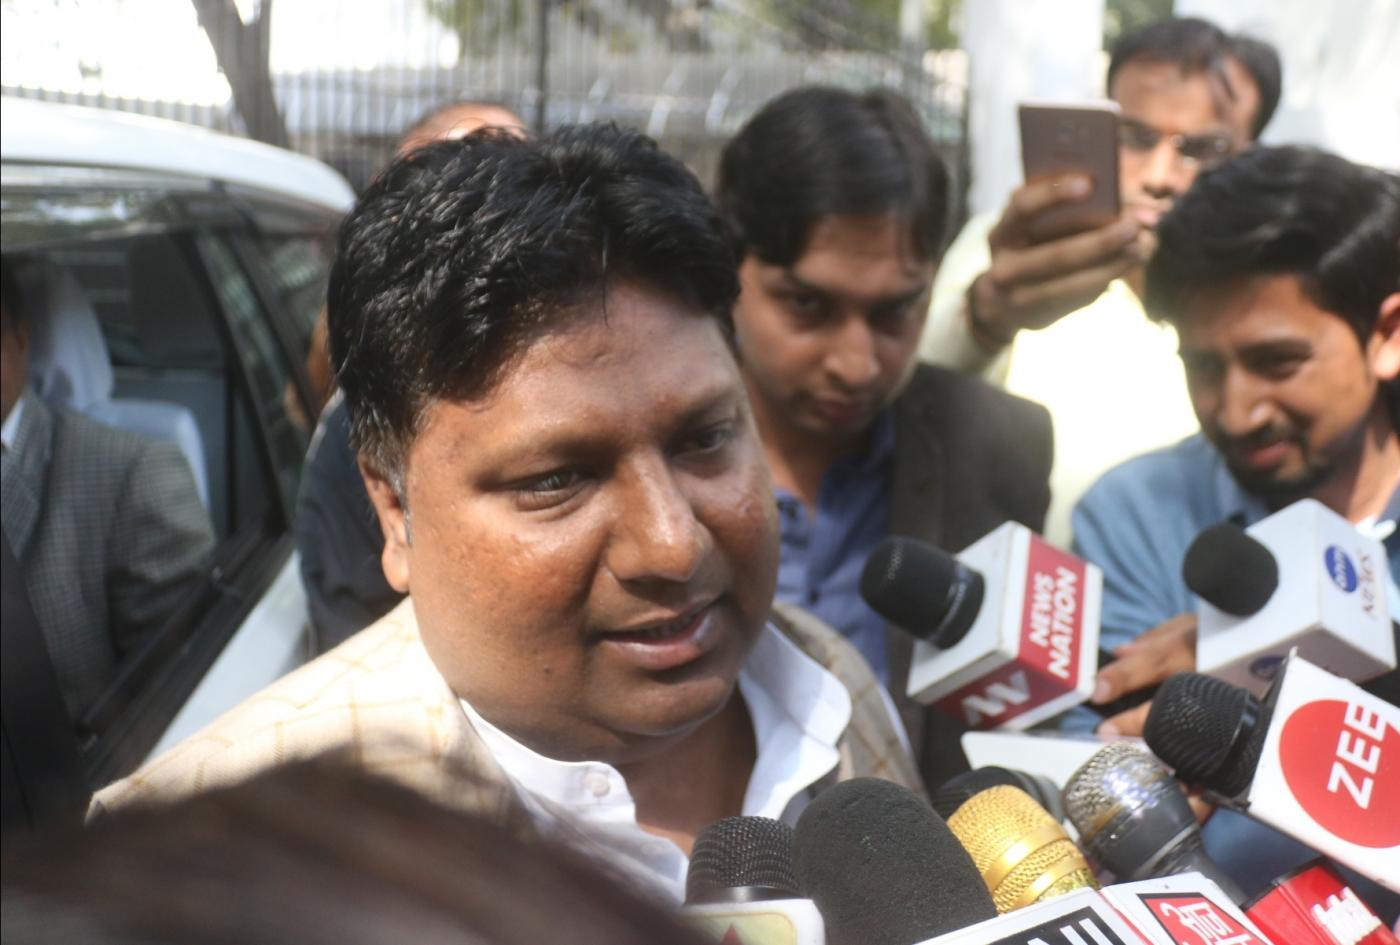 New Delhi: AAP MLA Imran Hussain talks to the press after meeting Delhi Lieutenant Governor Anil Baijal in connection with an alleged assault on Delhi Chief Secretary Anshu Prakash by two AAP MLAs, in New Delhi on Feb 21, 2018. On Tuesday, Prakash had alleged that he was beaten up by Aam Aadmi Party MLA Amanatullah Khan and his colleague in front of Kejriwal at the Chief Minister's residence on Monday midnight, where he was called for a meeting. (Photo: IANS) by .